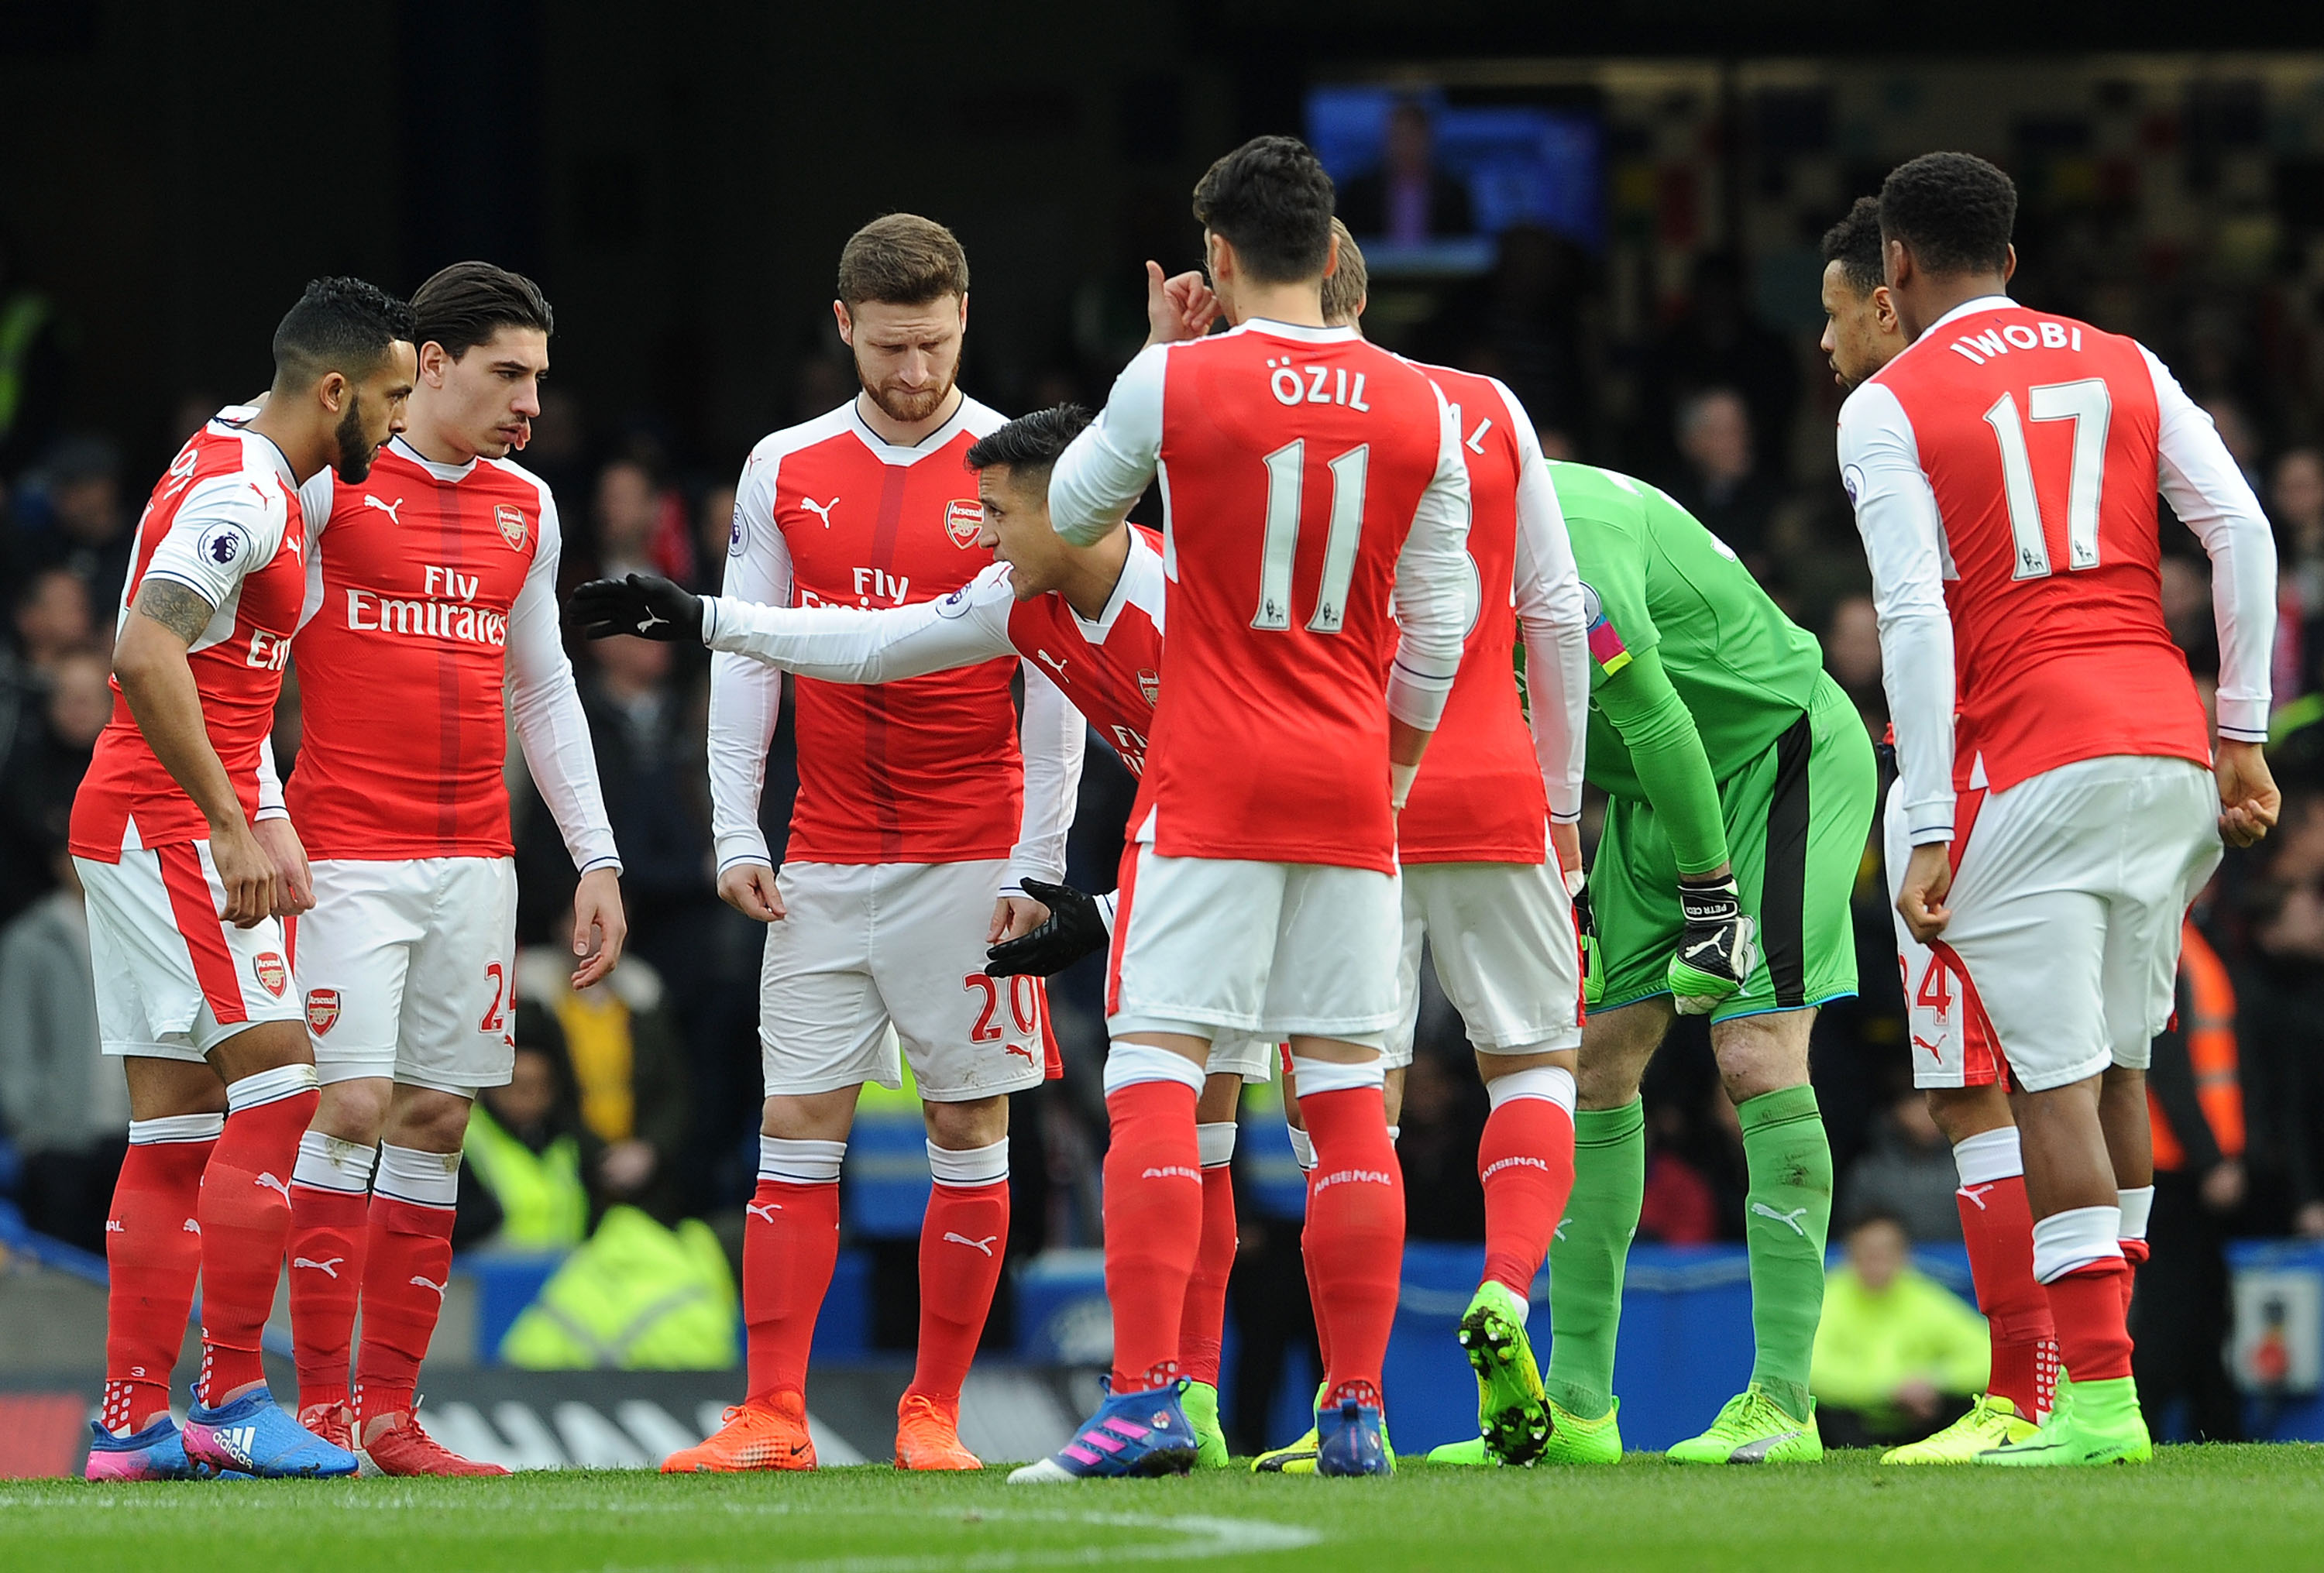 LONDON, ENGLAND - FEBRUARY 04: Alexis Sanchez of Arsenal gives his team mates instructions before the Premier League match between Chelsea and Arsenal at Stamford Bridge on February 4, 2017 in London, England. (Photo by David Price/Arsenal FC via Getty Images)